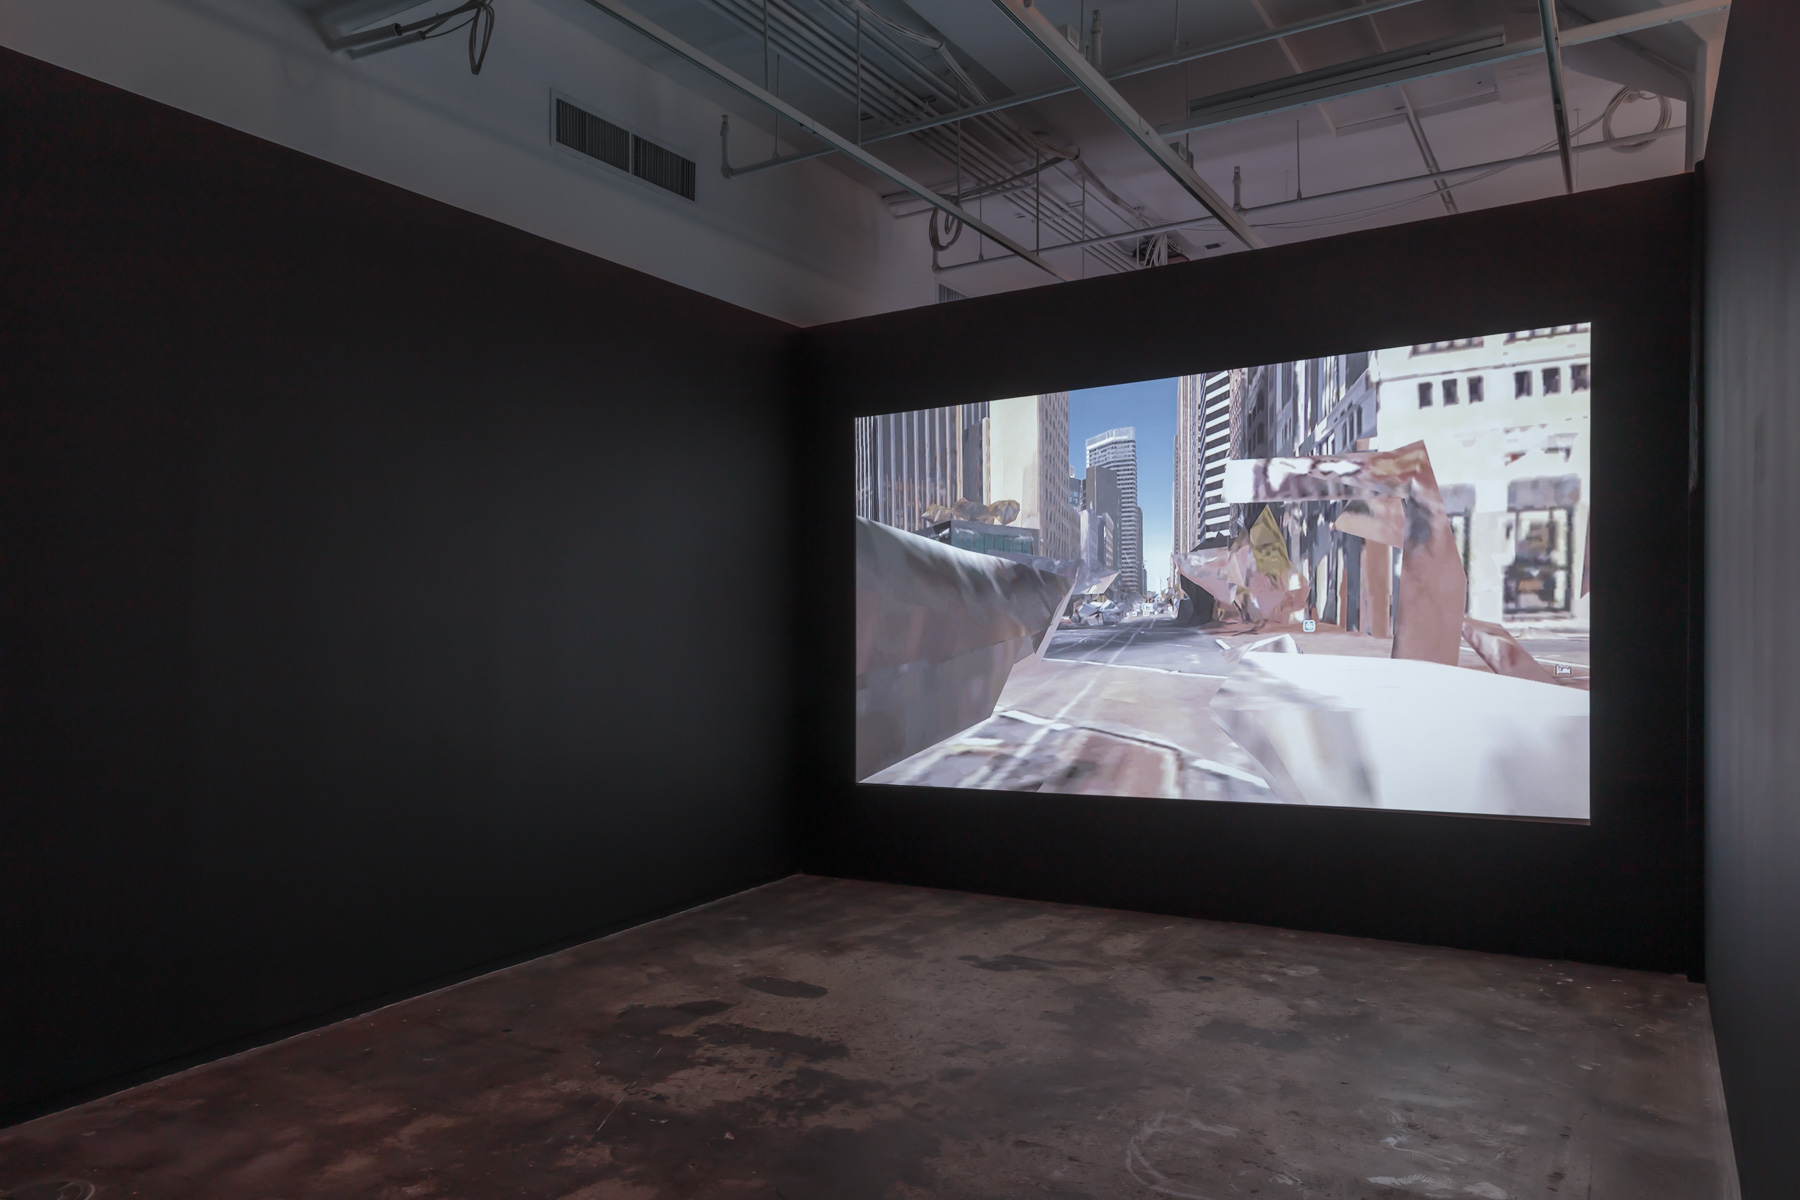 Stephanie Syjuco, Spectral City (A Trip Down Market Street, 1906/2018),  2018. Video, 13 min. 29 sec., sound. Courtesy of Catharine Clark Gallery, San Francisco and RYAN LEE Gallery, New York. Installed in  Refiguring the Future , Hunter College Art Galleries, 2019. Photo by Stan Narten.